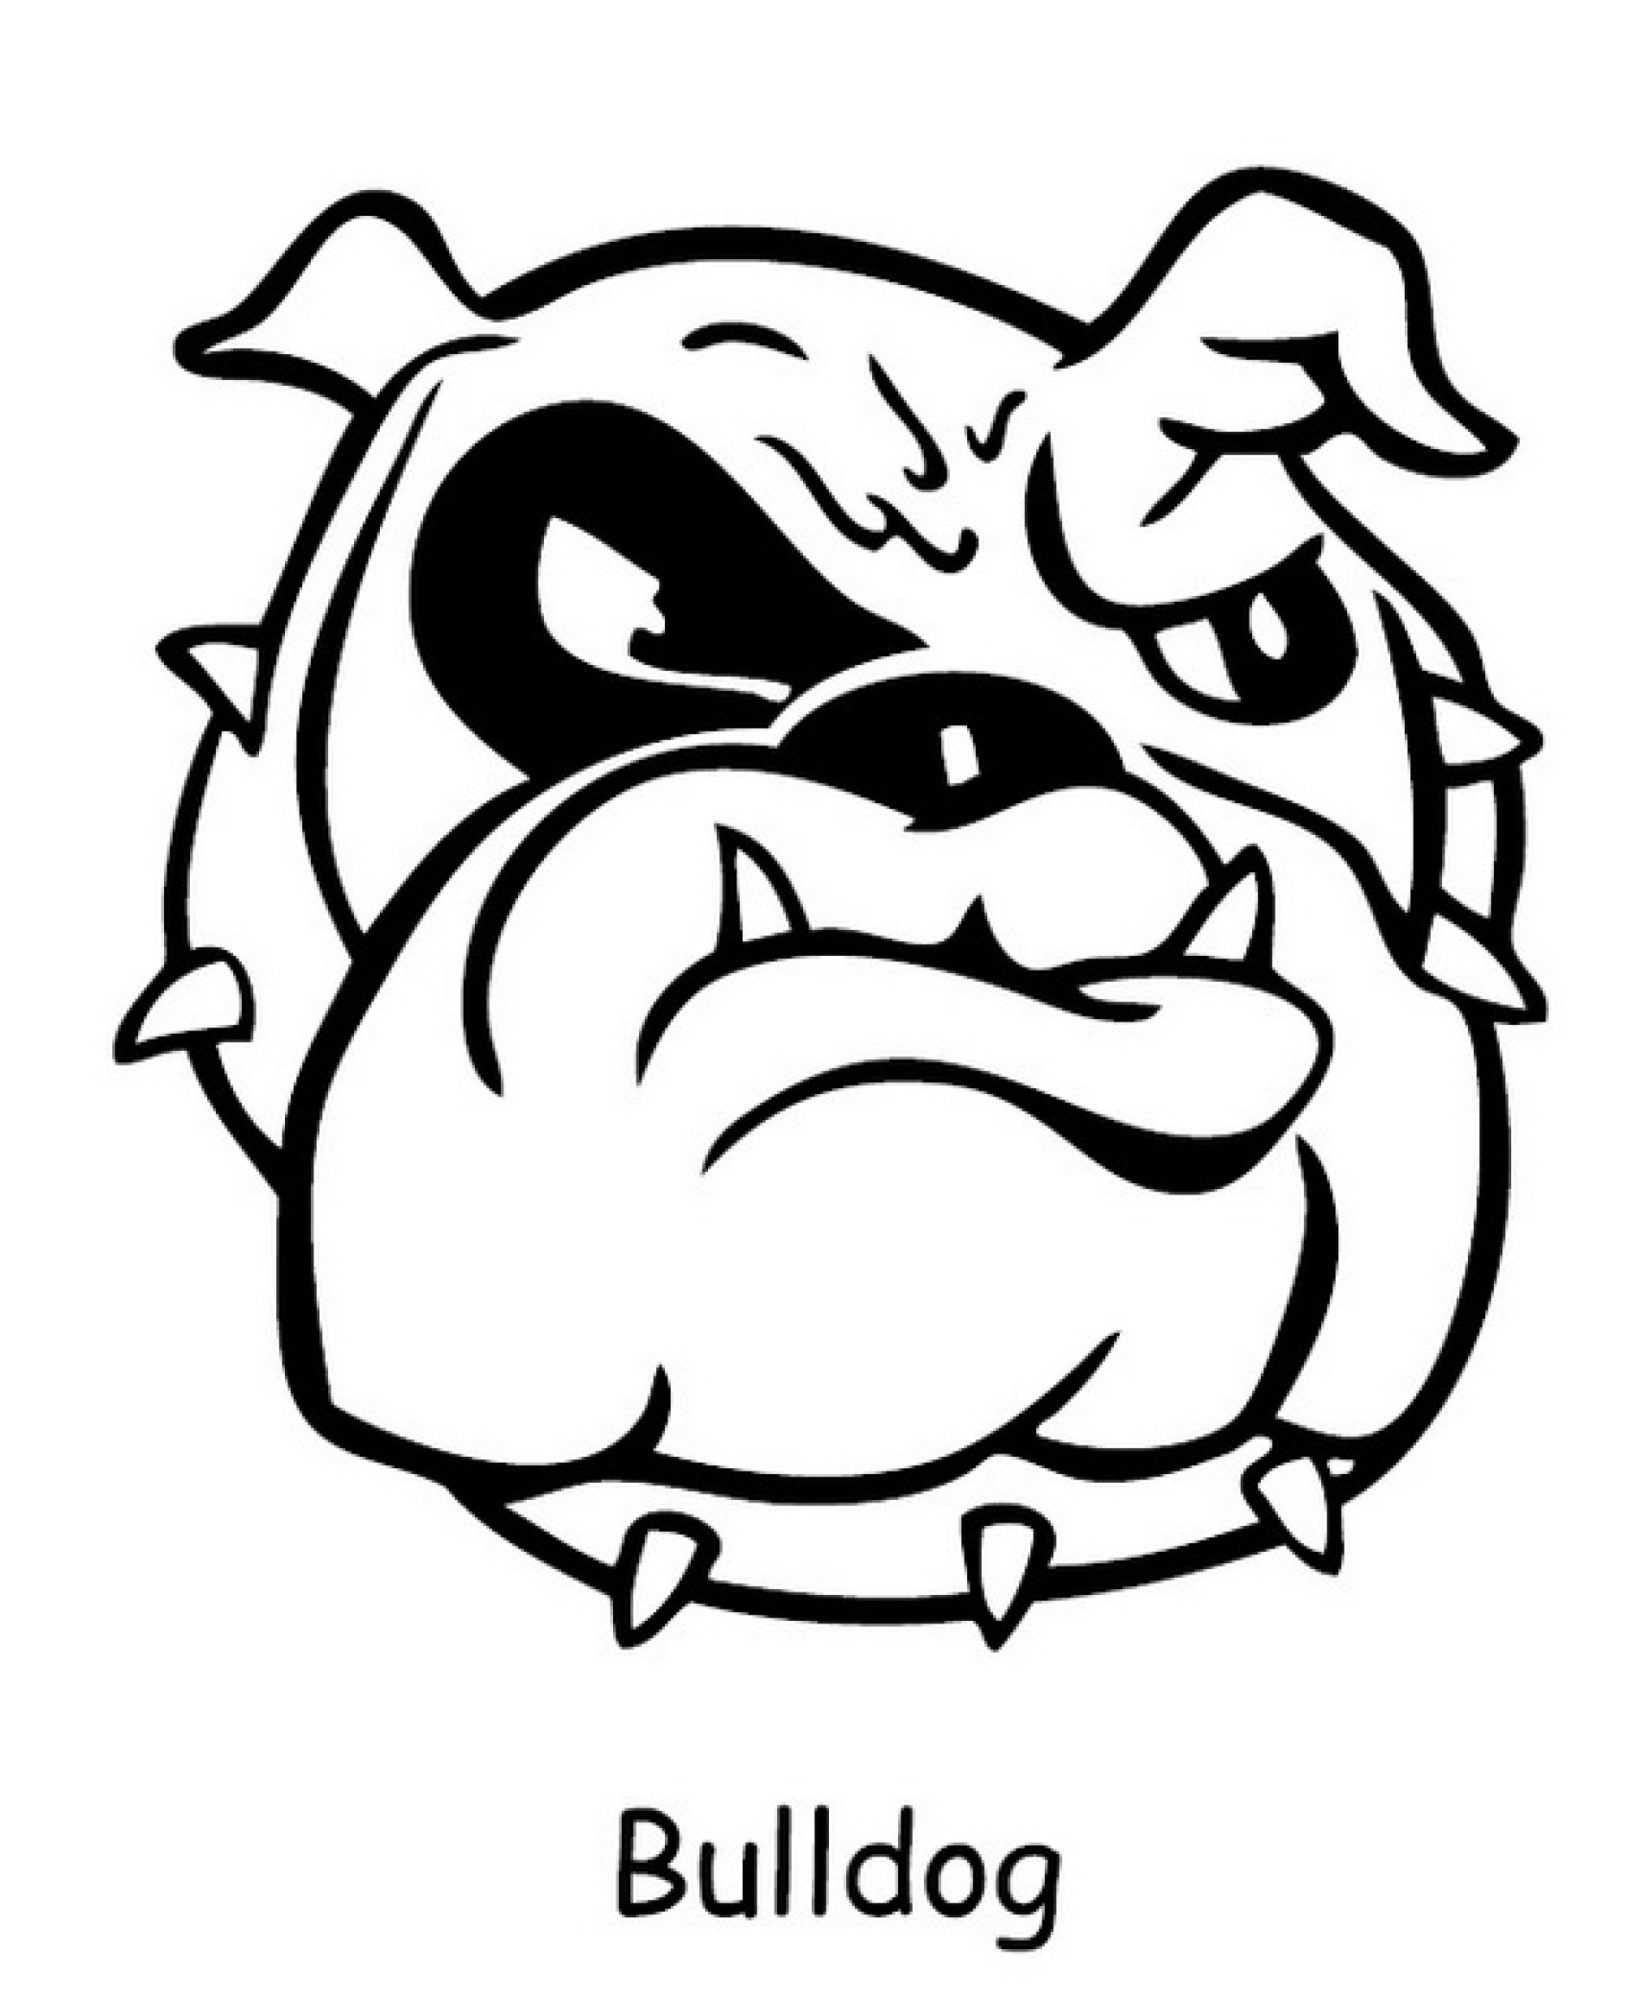 1632x2000 Cute Bulldog Cartoon Drawing Sketch Coloring Page Sketch Coloring